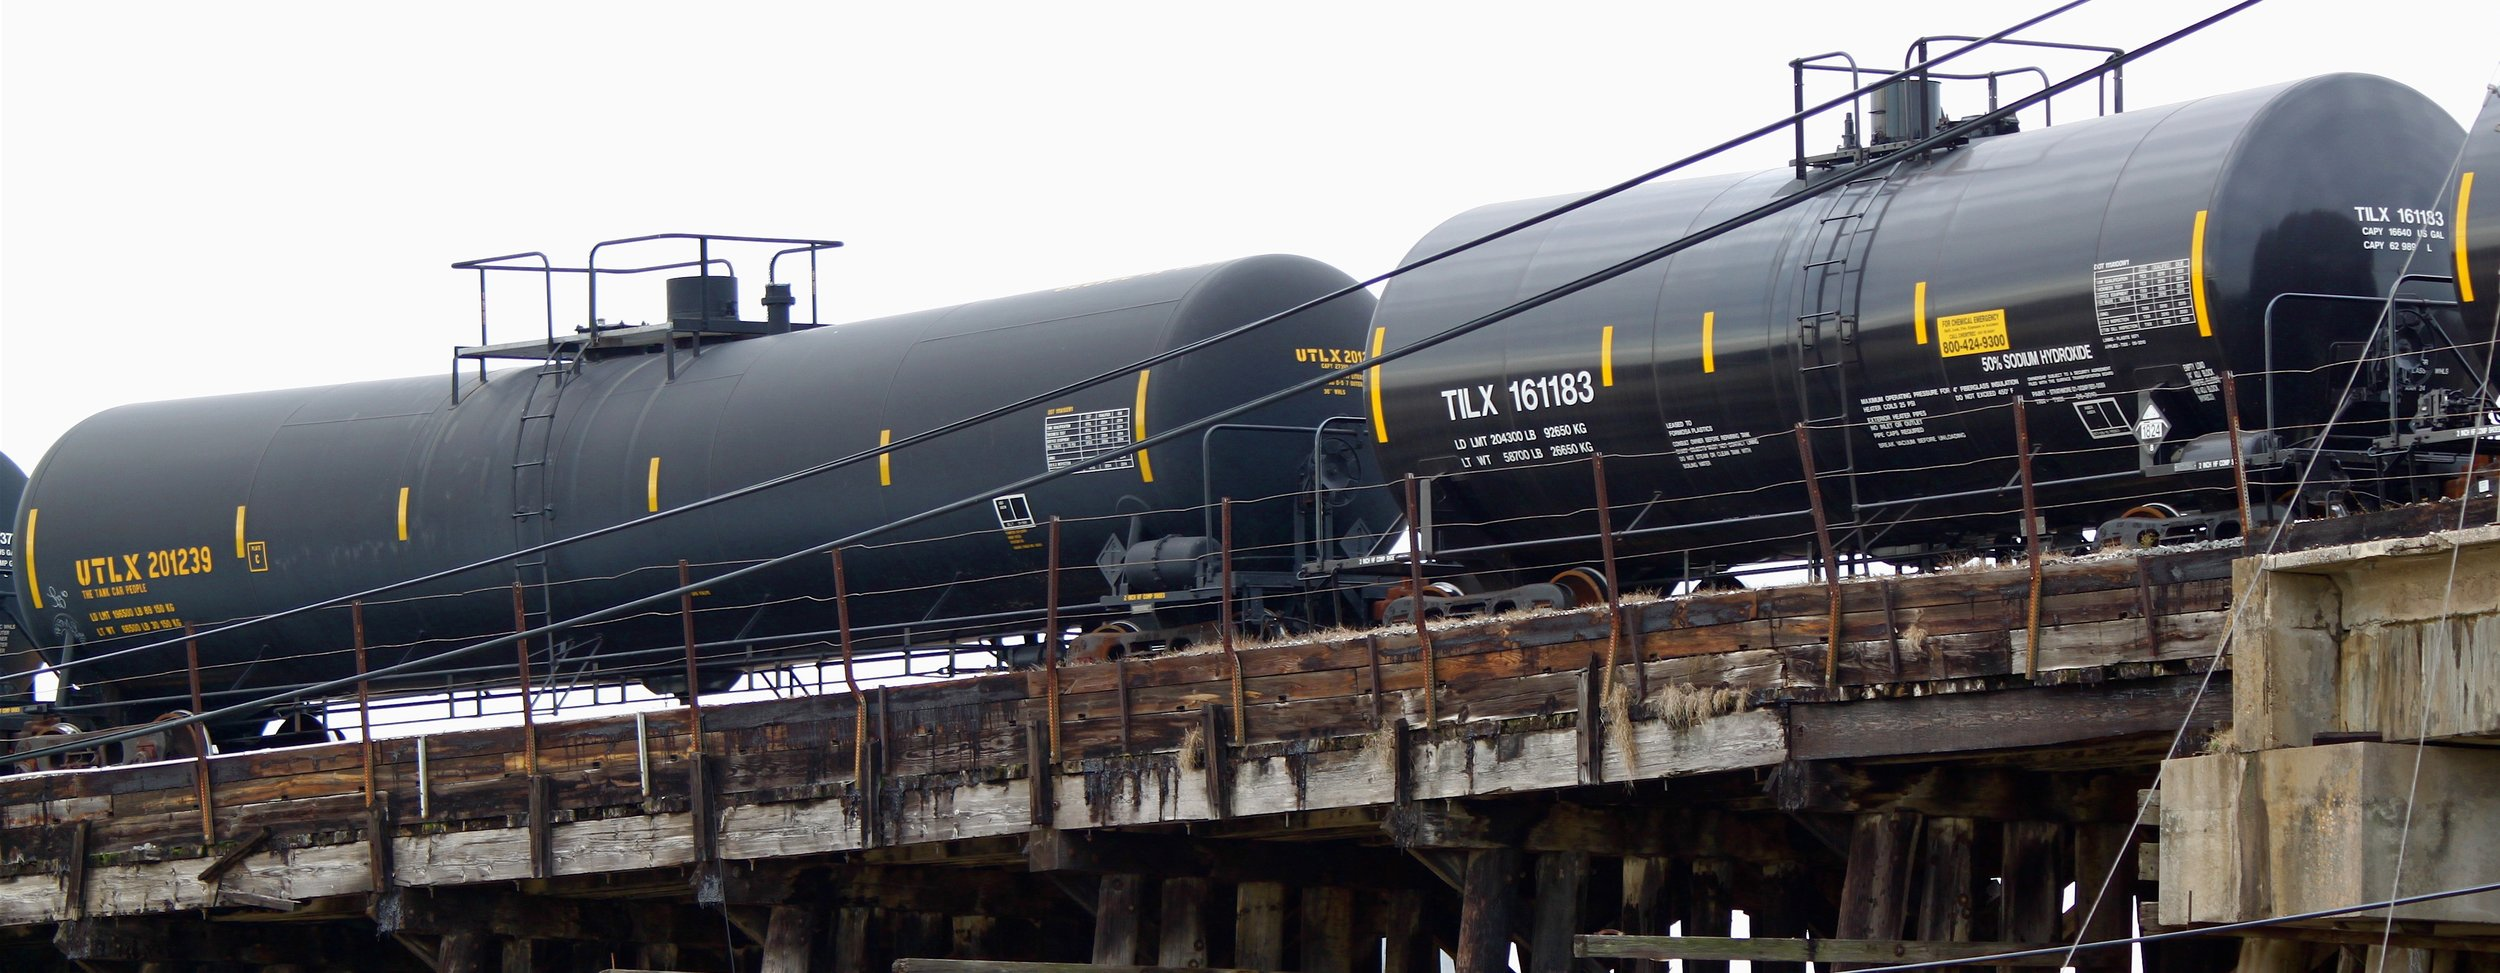 Oil tanker cars at Union Pacific's Englewood Yard, Houston, Texas. Photo courtesy of Roy Luck.